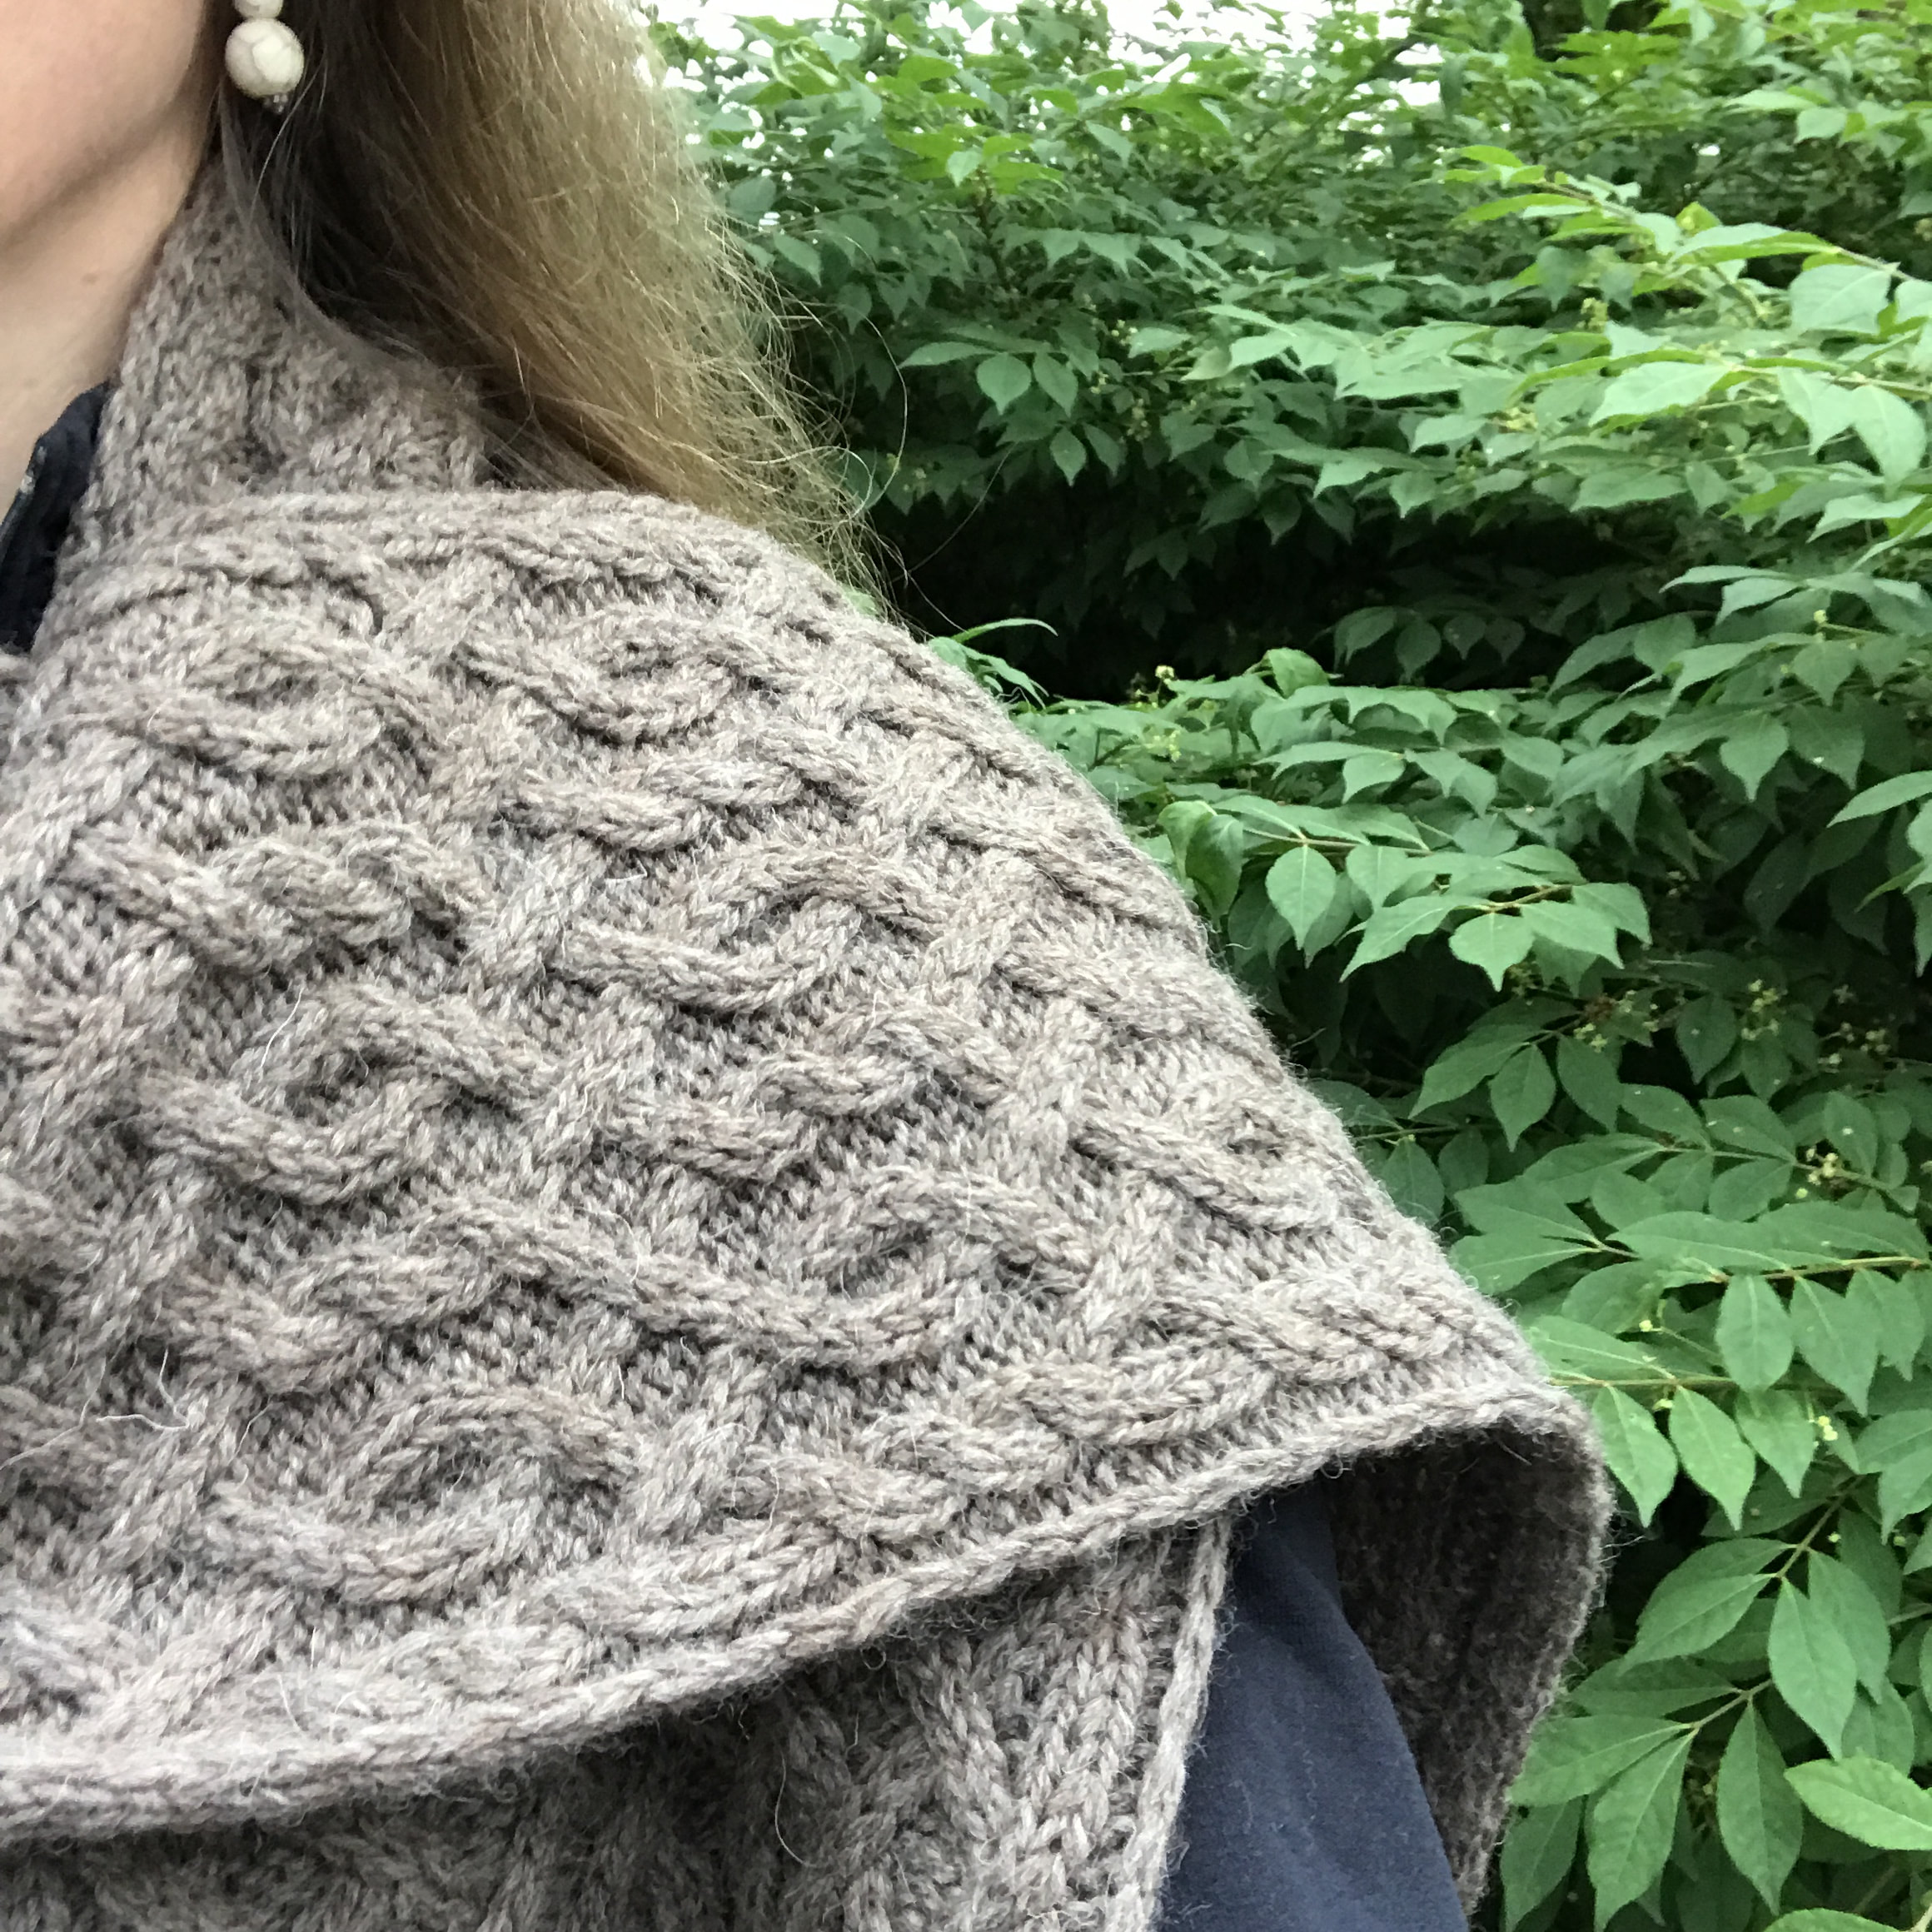 Creekwater Cabled Scarf Knitting Pattern